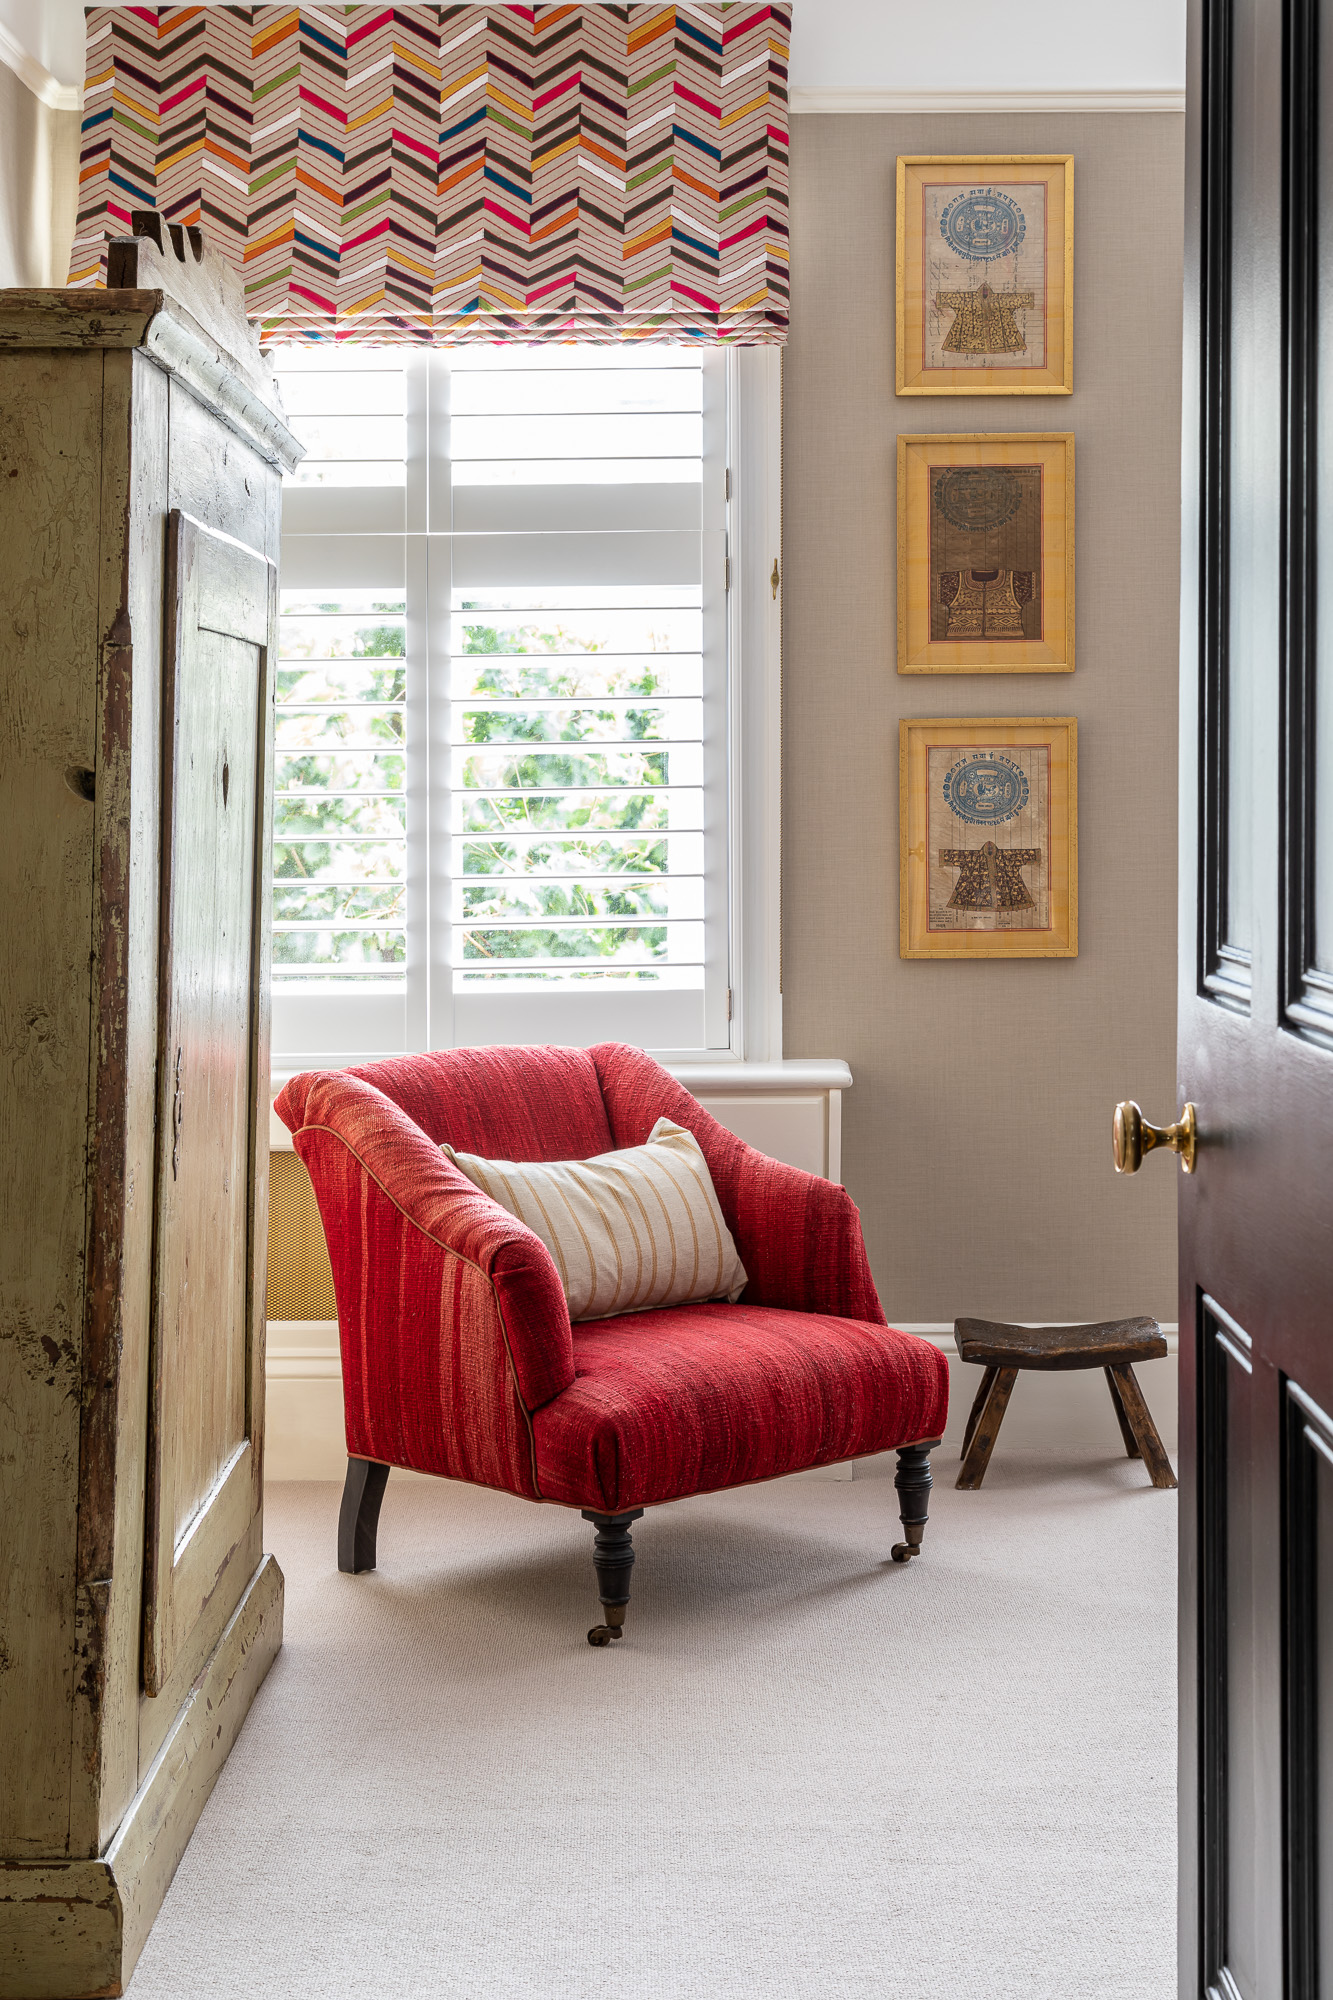 jonathan bond, view of bedroom from hallway of red armchair, clapham, london